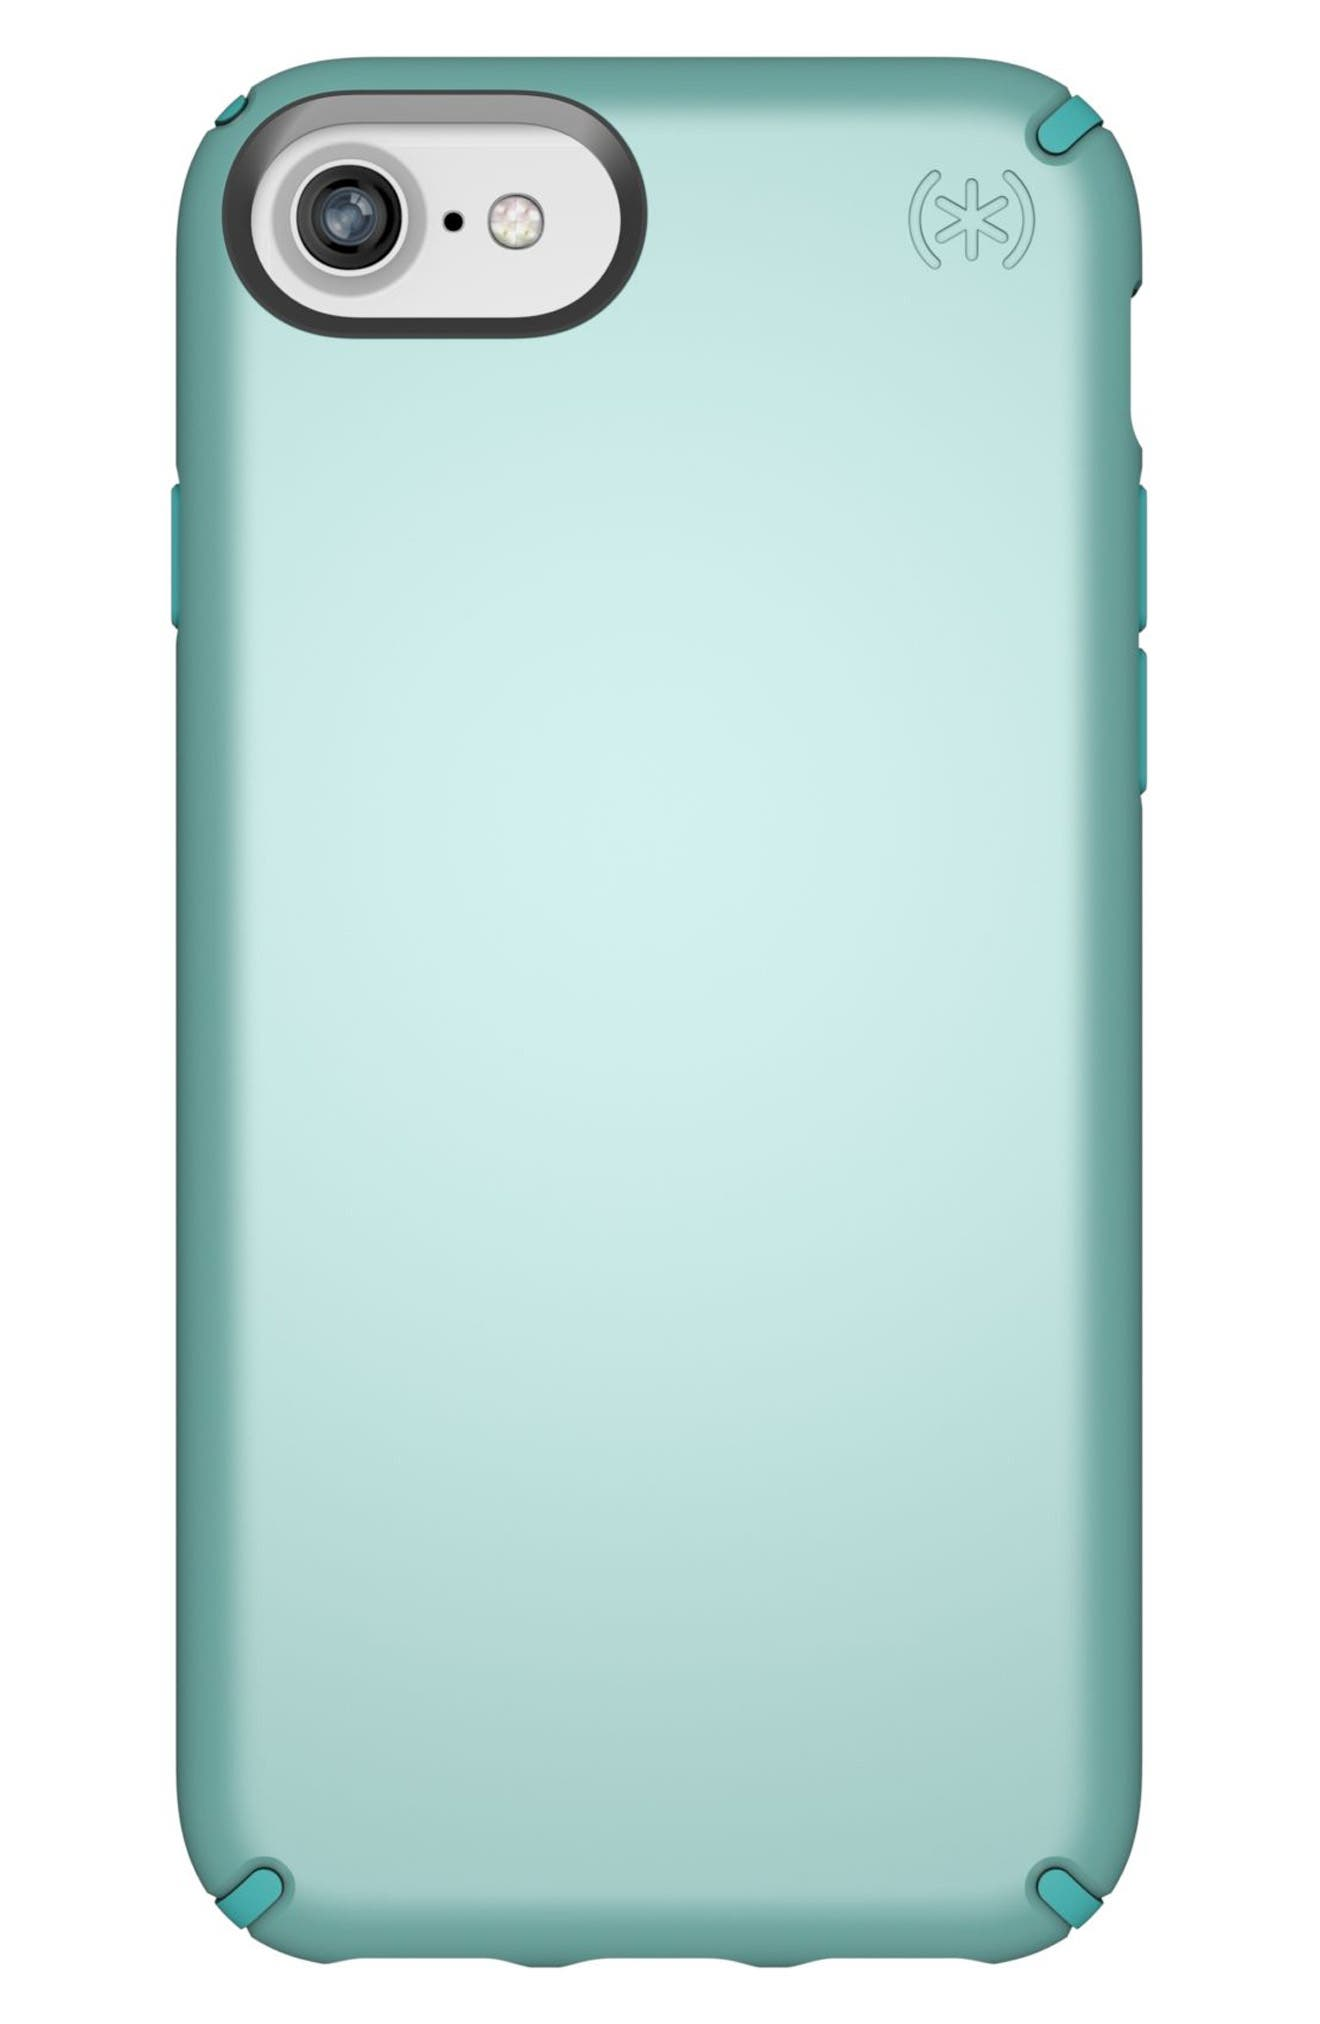 iPhone 6/6s/7/8 Case,                             Main thumbnail 1, color,                             Peppermint Green/ Teal